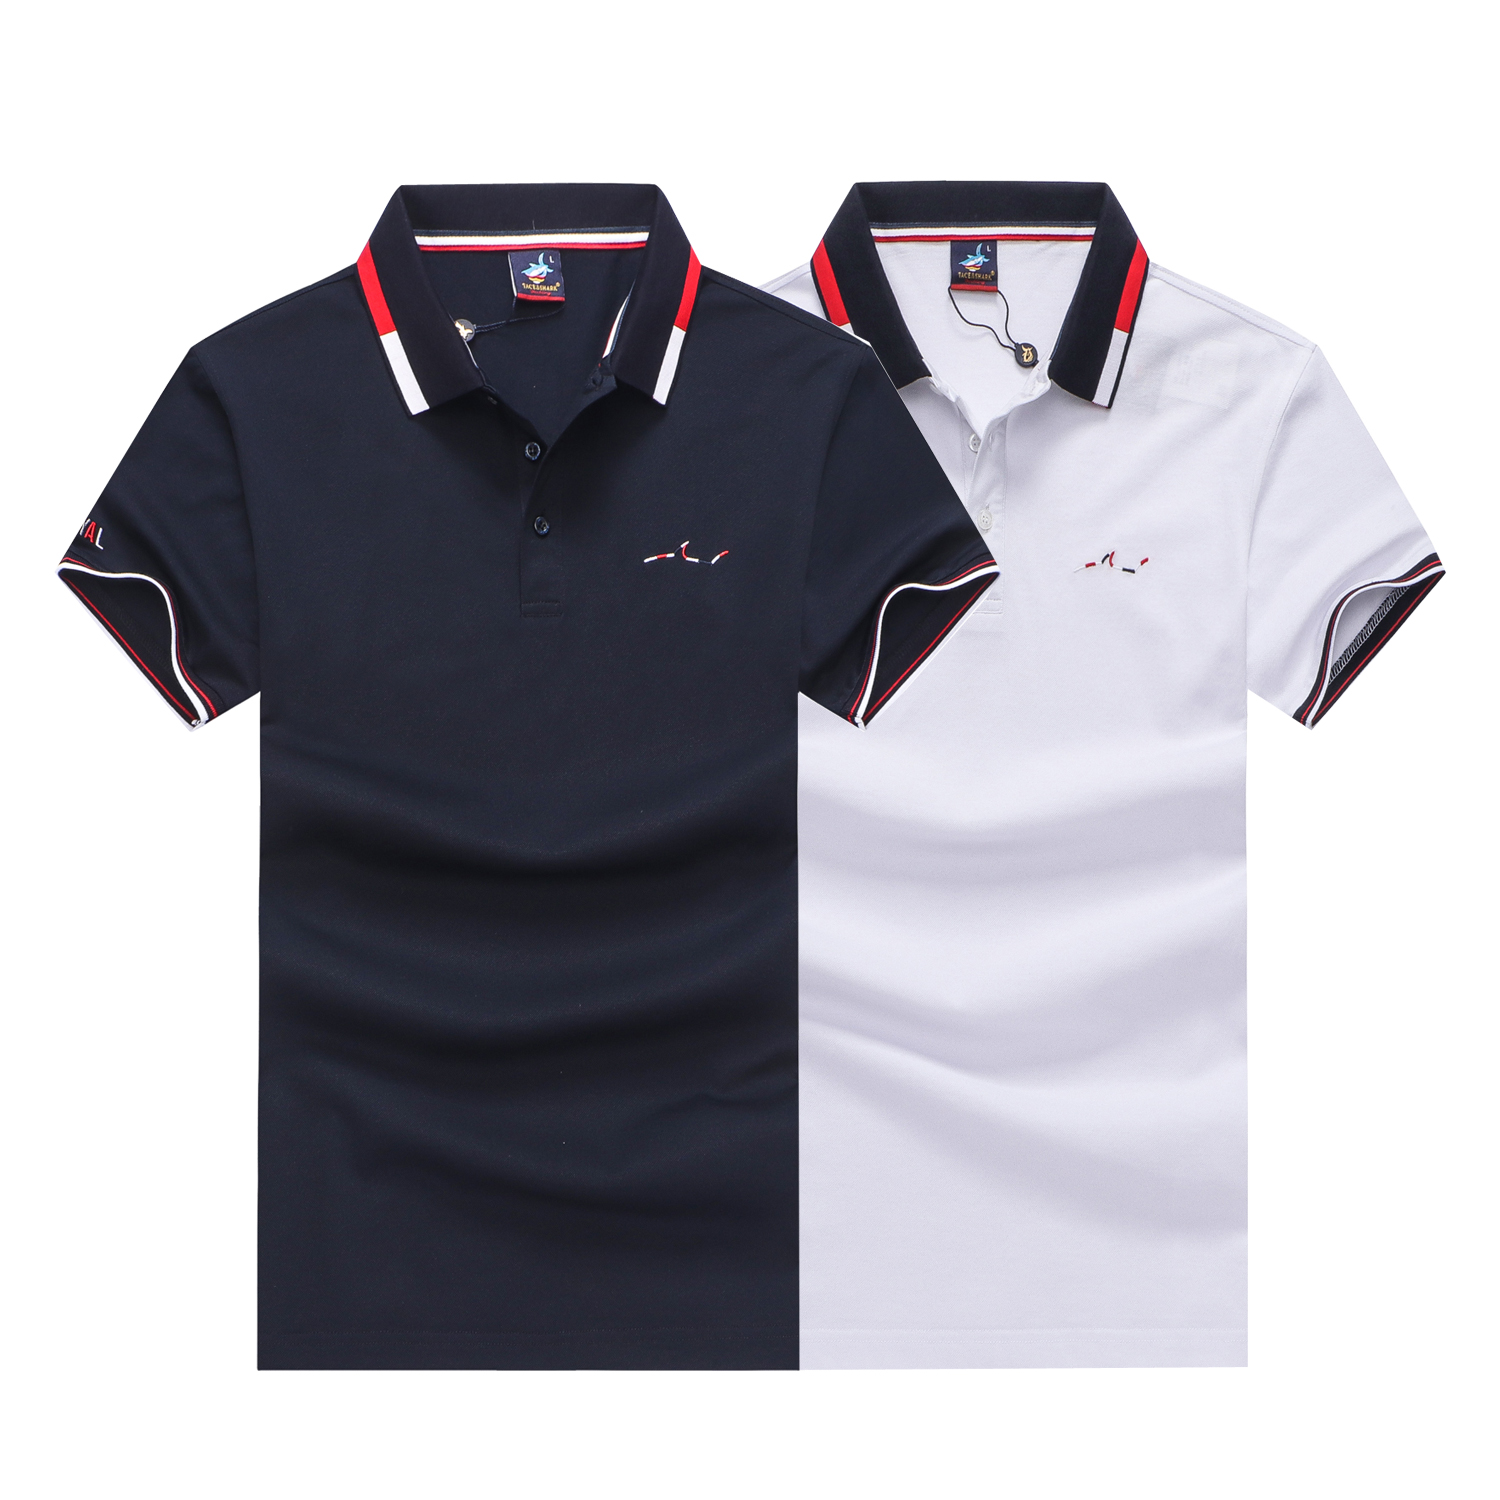 2019 New Tace & Shark Brand Polo Shirt Men Summer Casual Striped Cotton Polo Shirt Solid Formal Business Camisa Polo Shirt